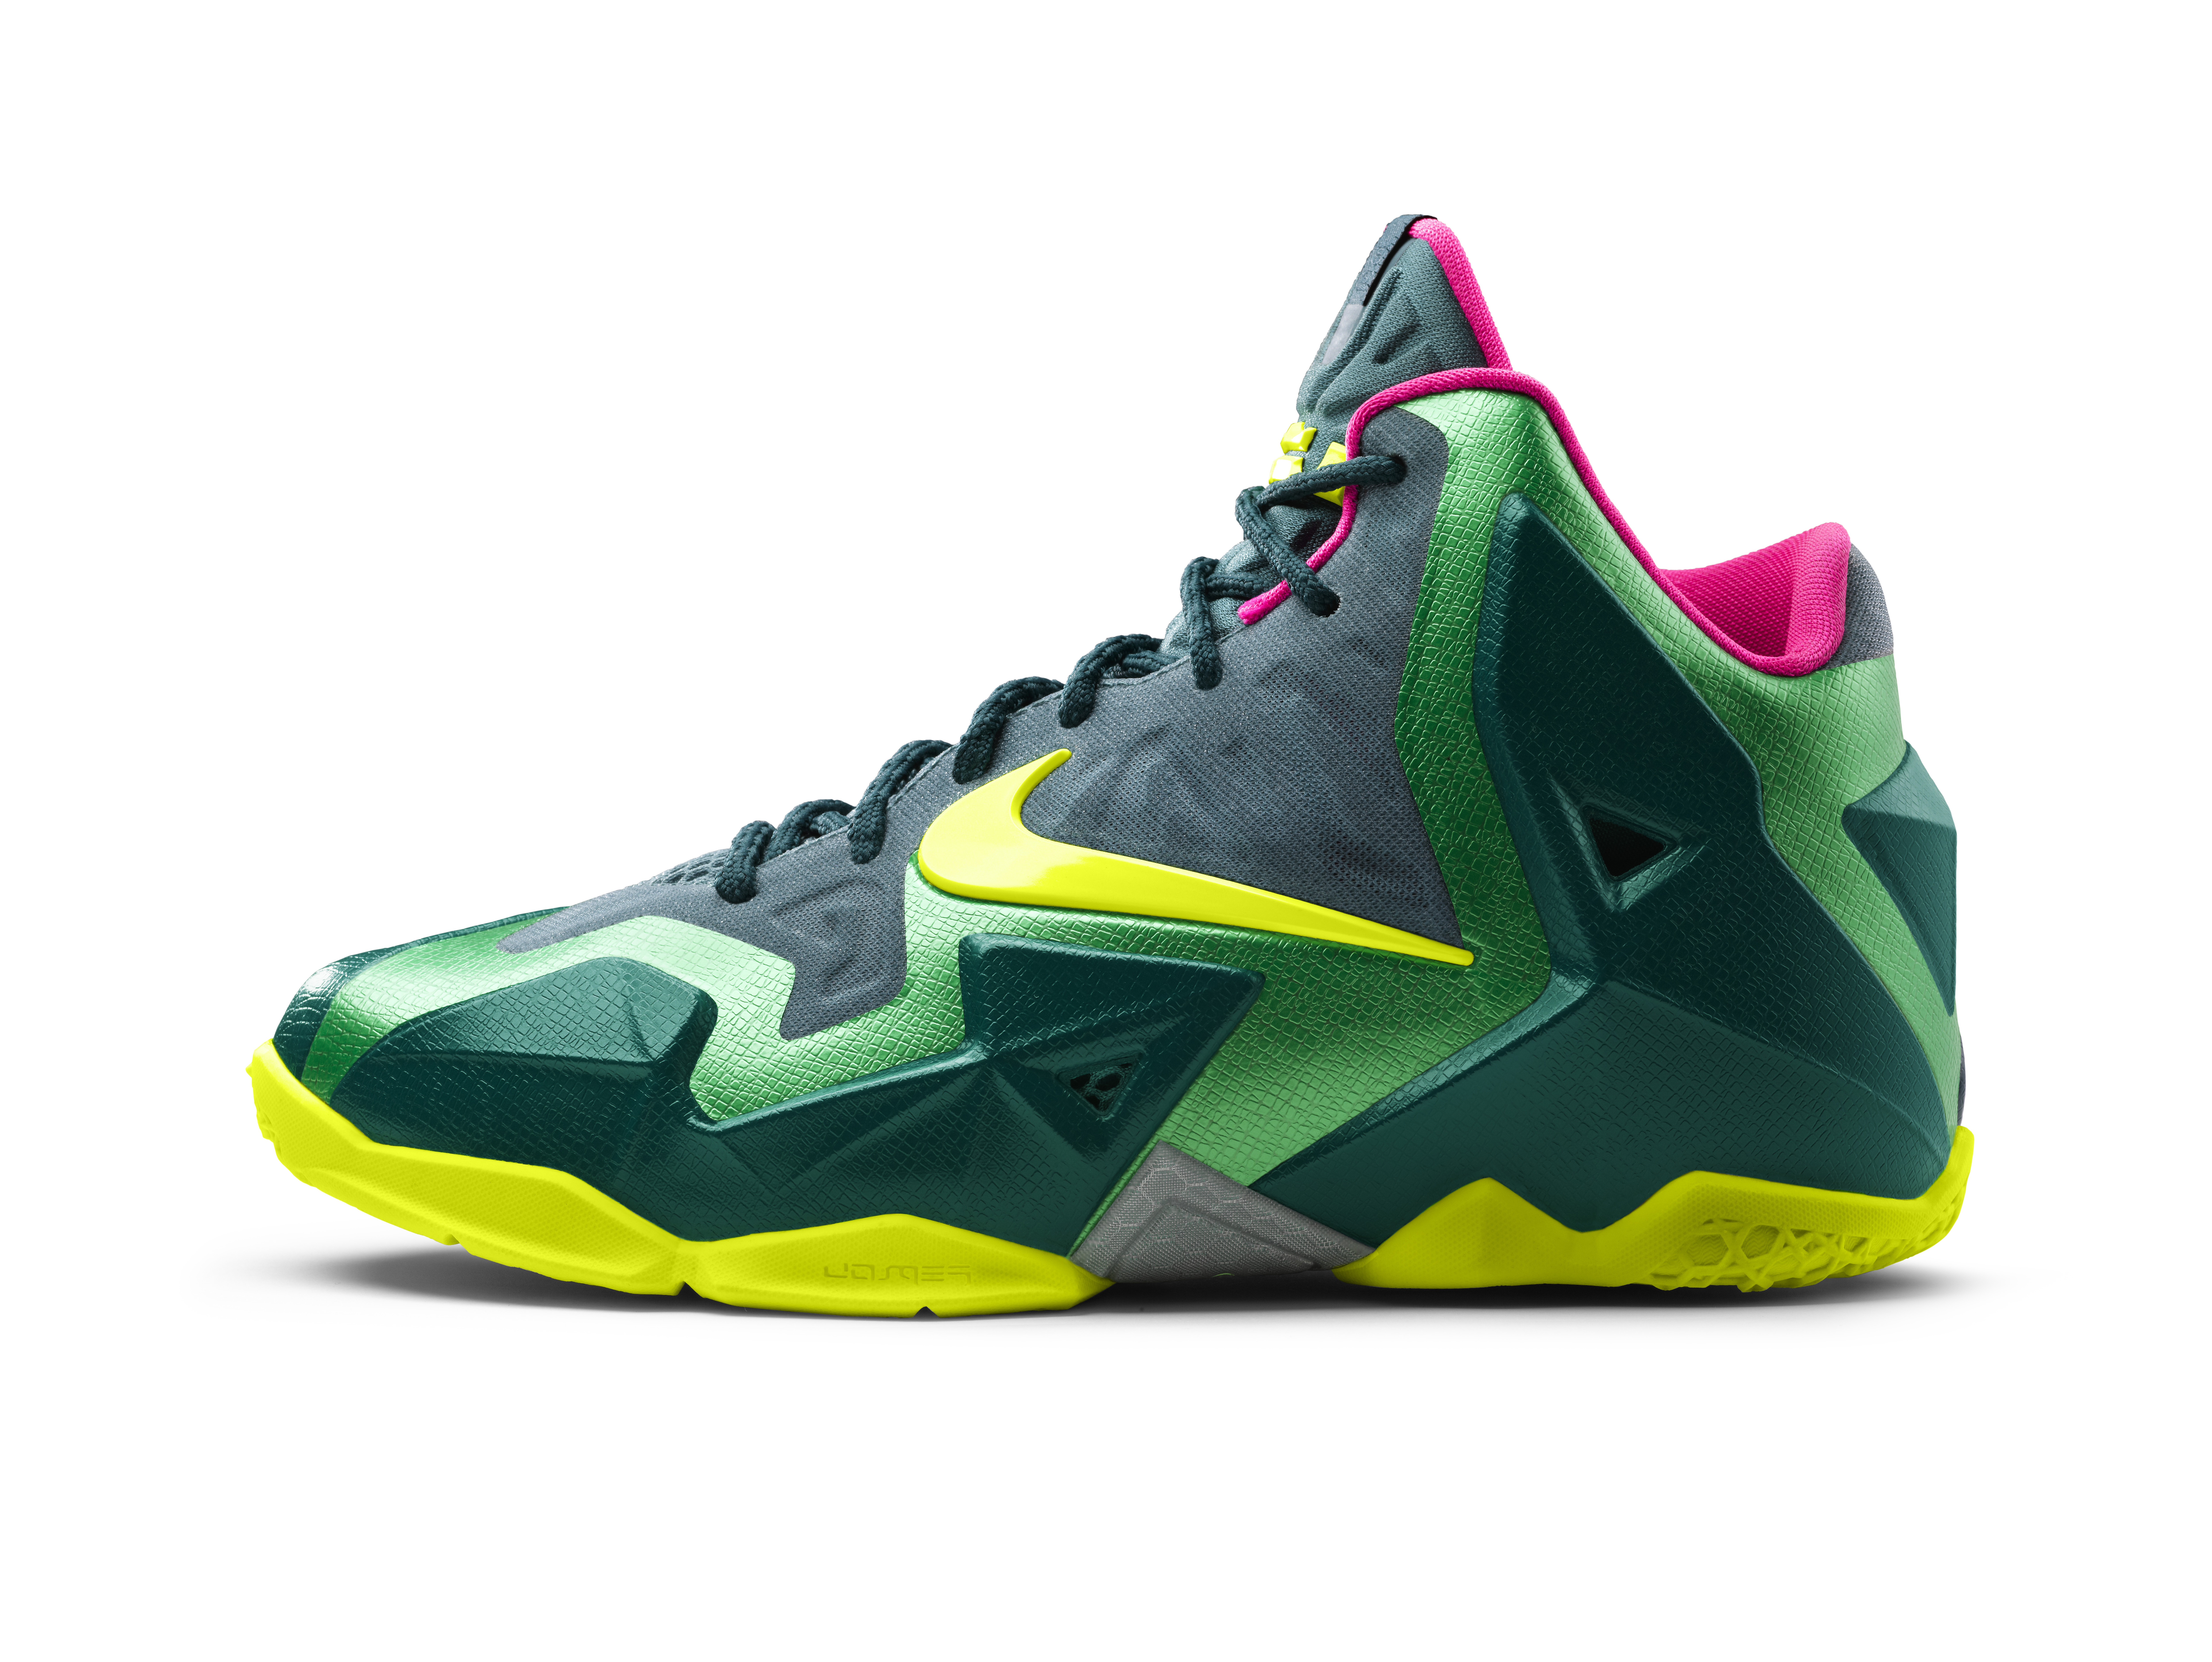 outlet store 2999d 07c8f ... LEBRON 11 T-Rex Colorway Big Inspiration for Smaller Feet - ... nike  lebron xi 11 dunkman mica green volt ...